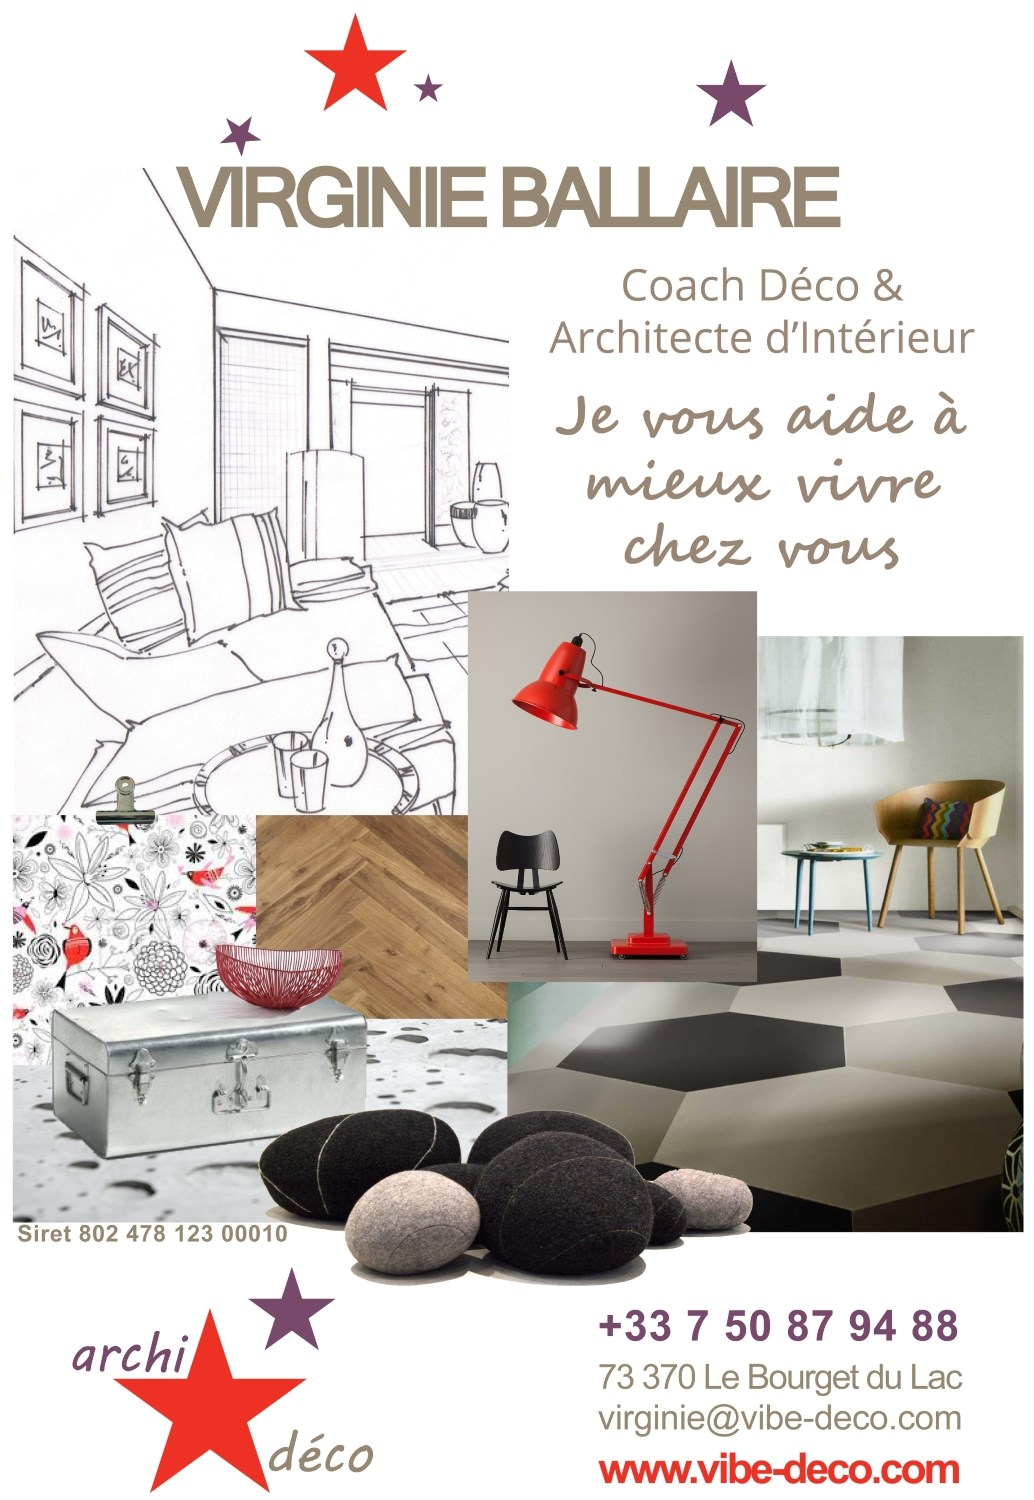 vibe deco architecte d 39 int rieur chamb ry en savoie. Black Bedroom Furniture Sets. Home Design Ideas